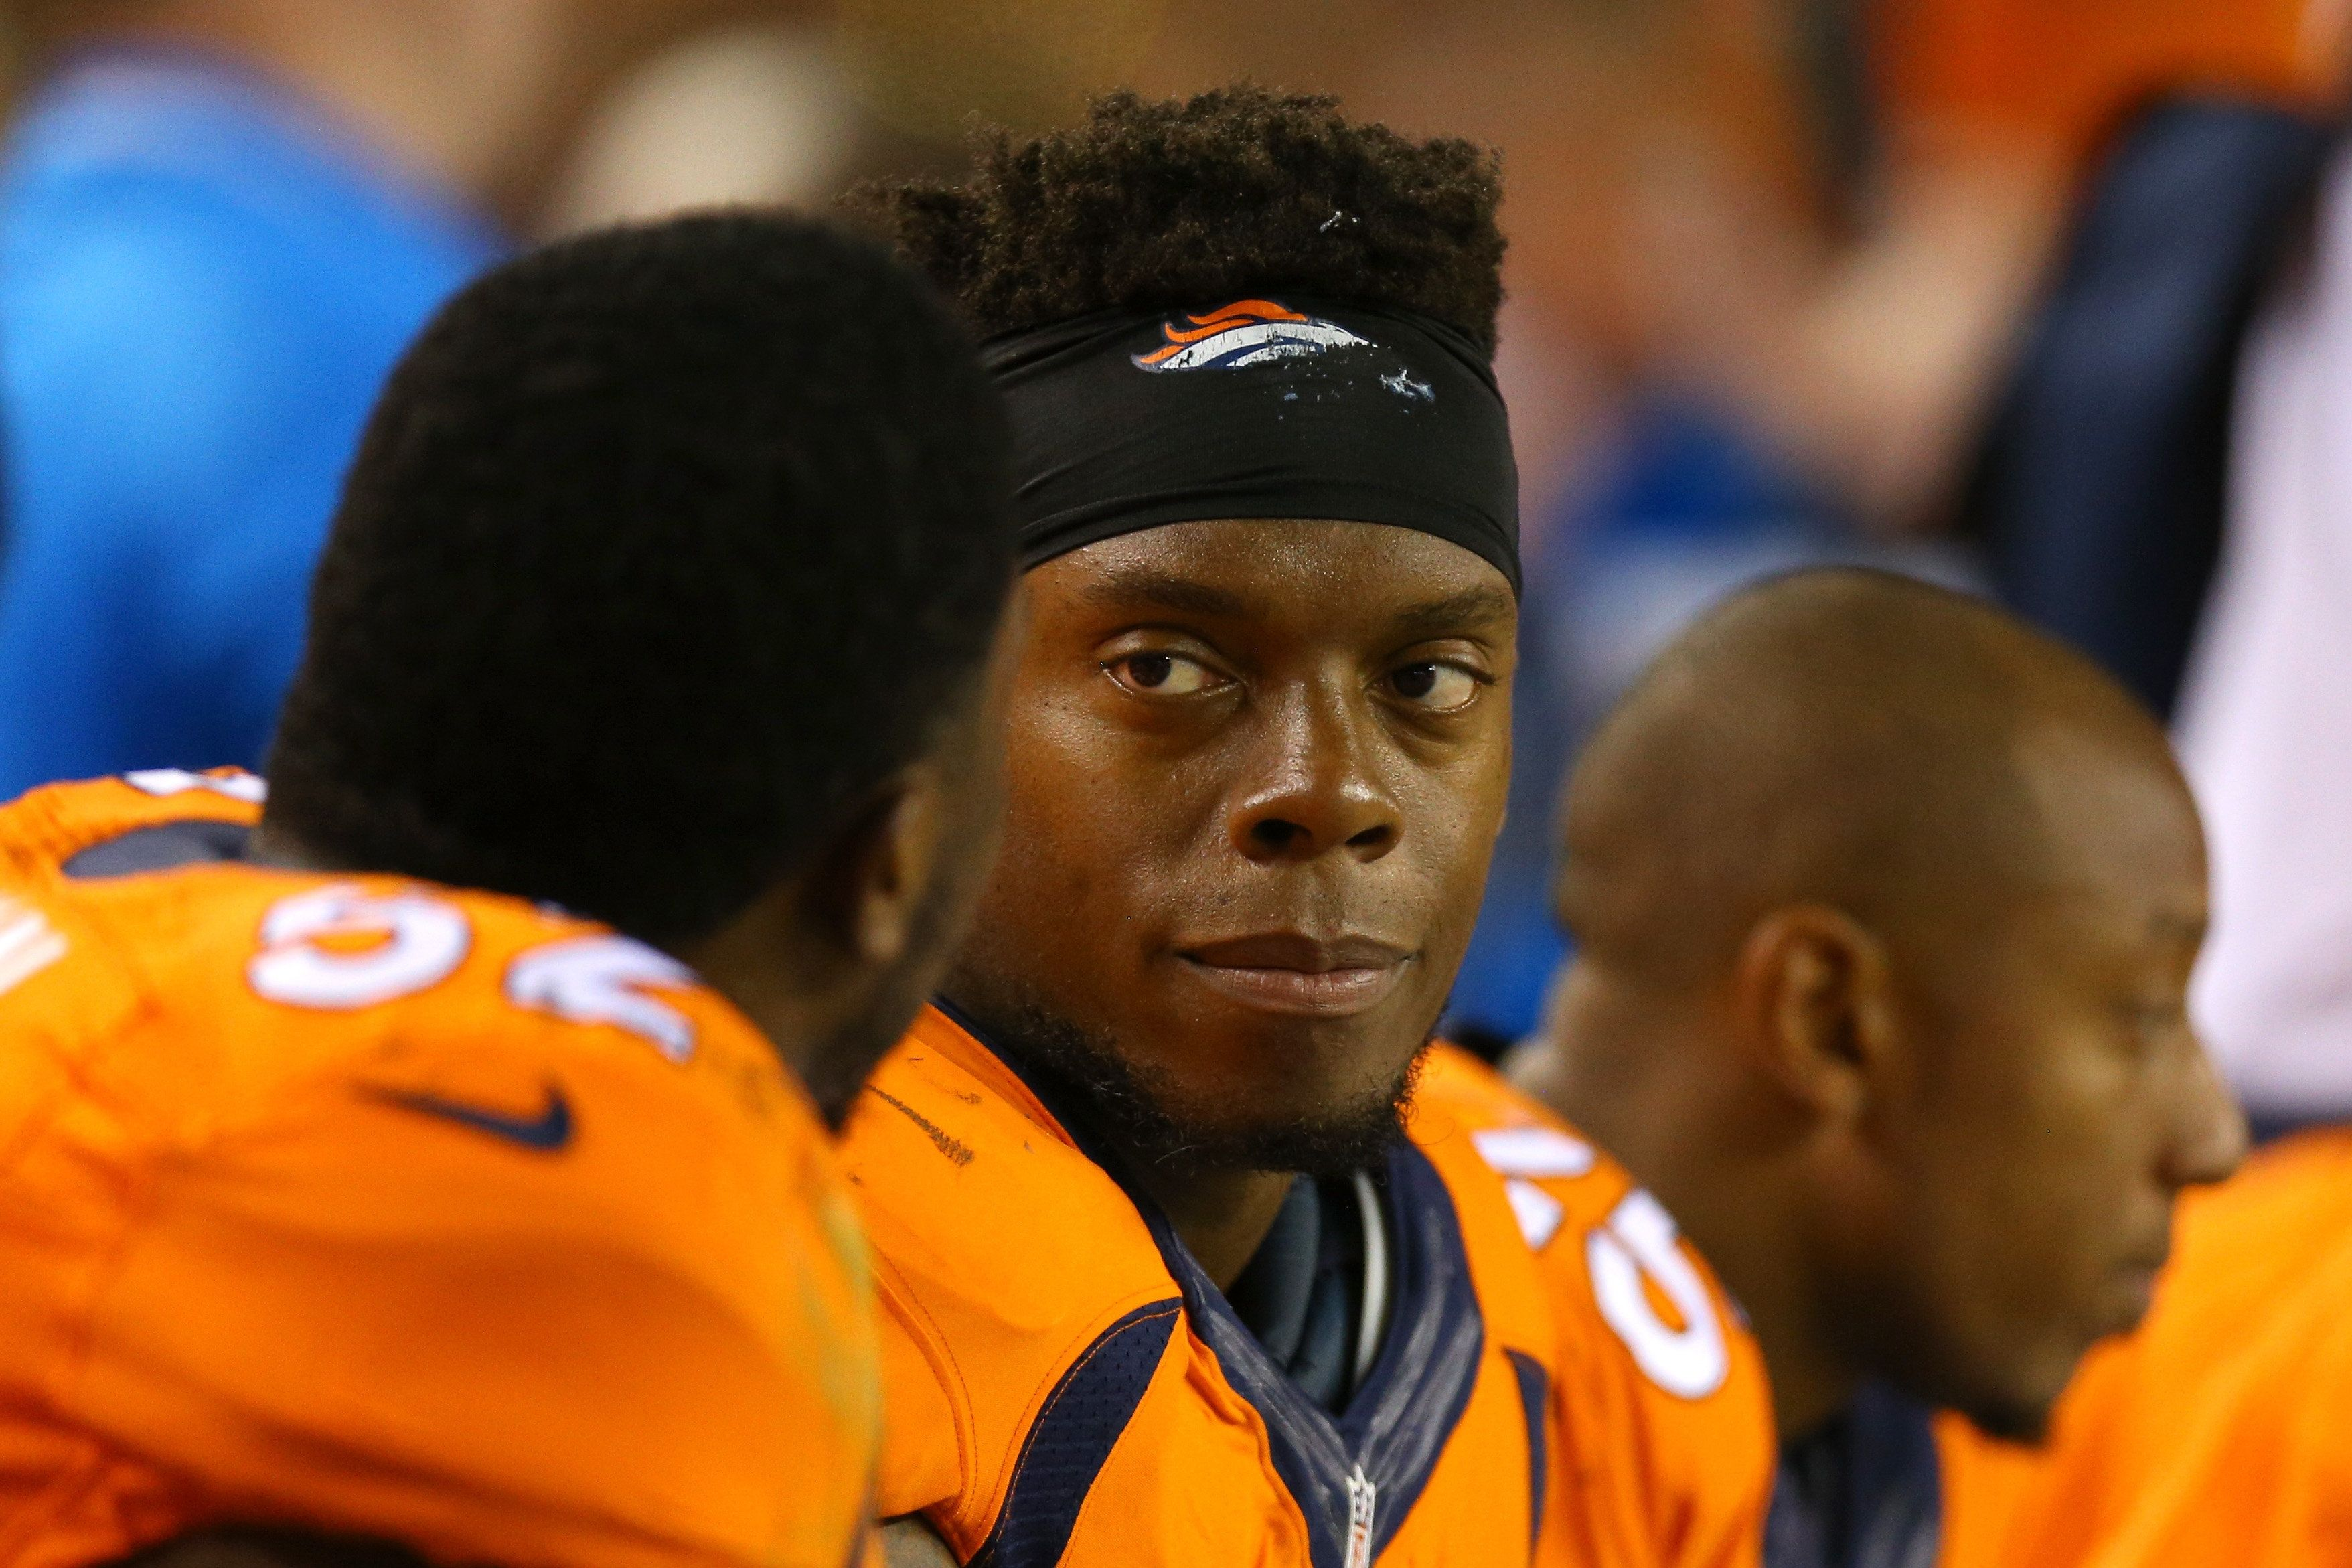 DENVER, CO - SEPTEMBER 08:  Inside linebacker Brandon Marshall #54 of the Denver Broncos looks on from the bench in the first half against the Carolina Panthers at Sports Authority Field at Mile High on September 8, 2016 in Denver, Colorado.  (Photo by Justin Edmonds/Getty Images)